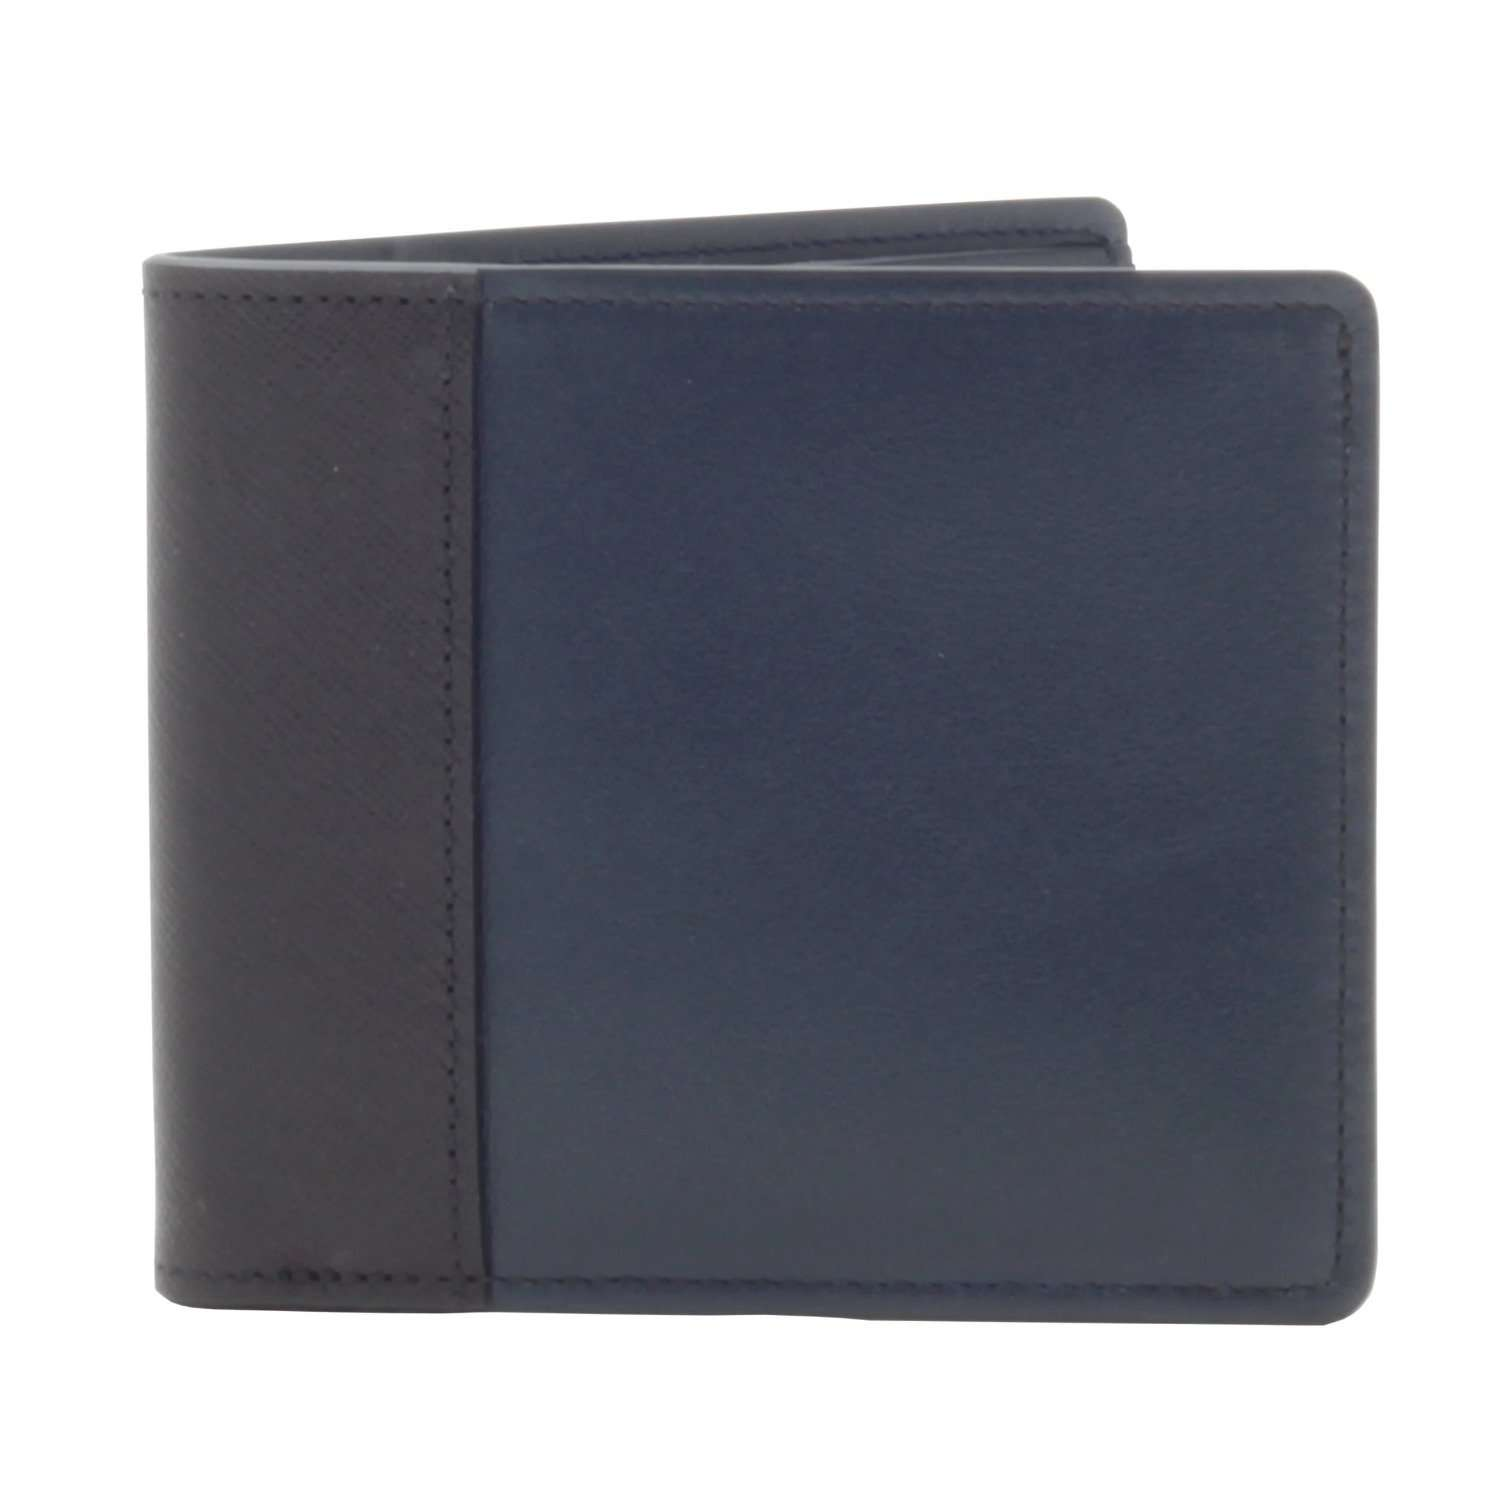 007 Navy Leather Billfold Wallet By Globetrotter - 007STORE